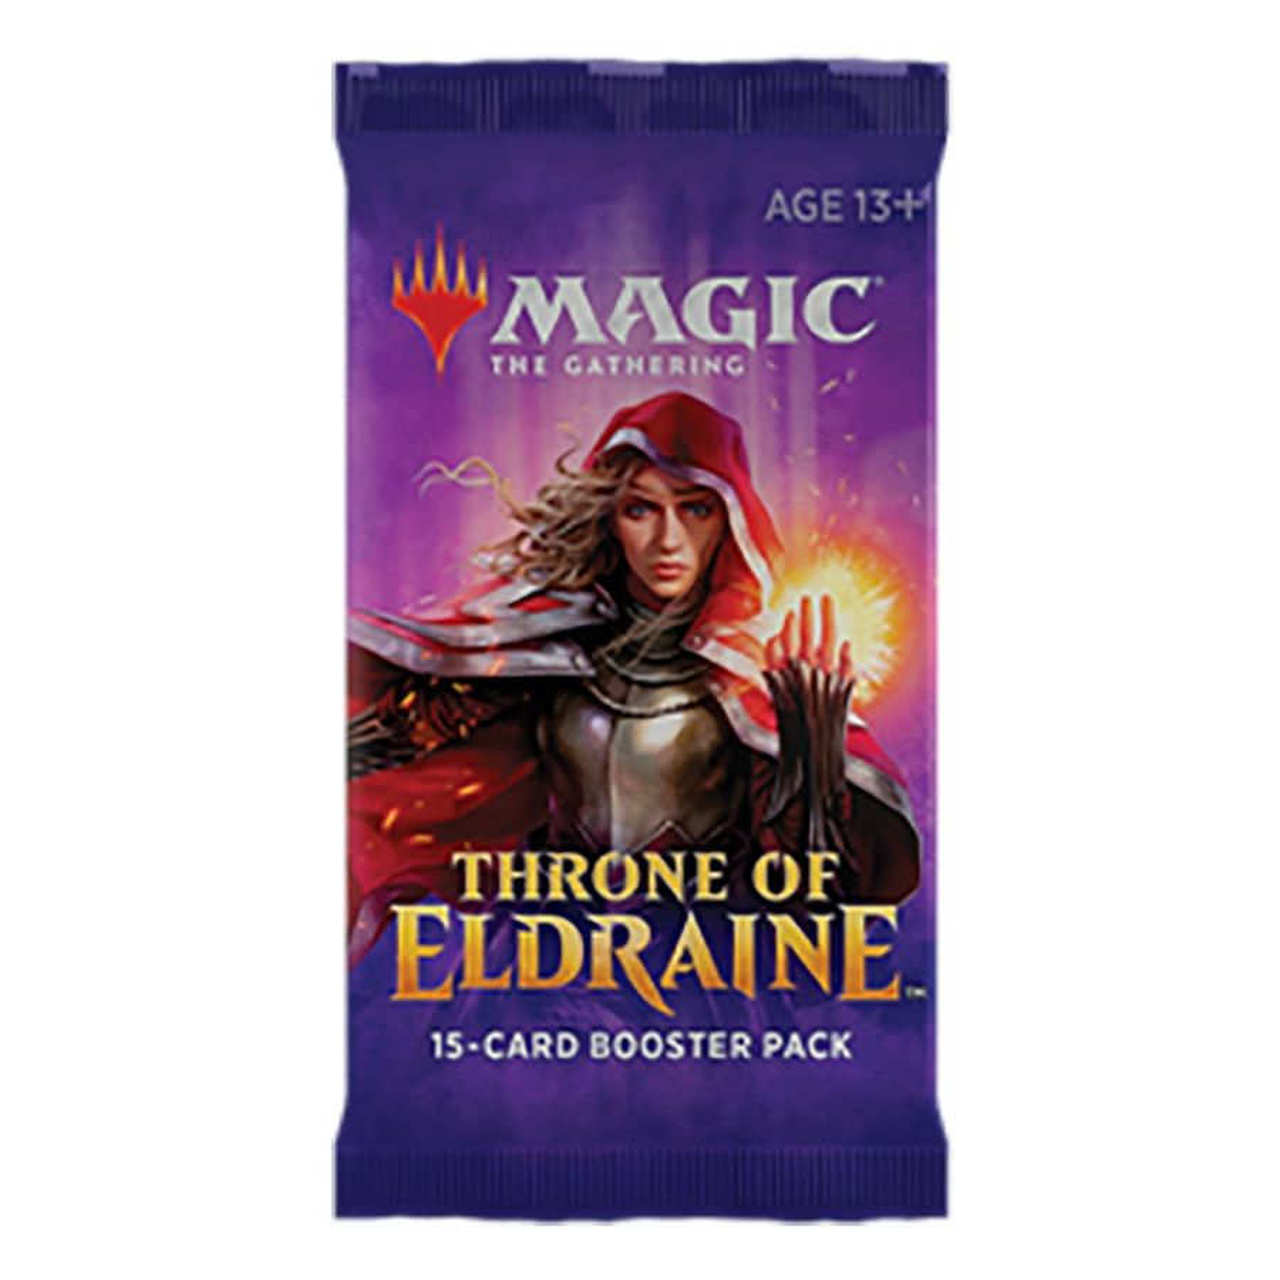 Throne of Eldraine - Booster Pack | A&H Games - Monroe